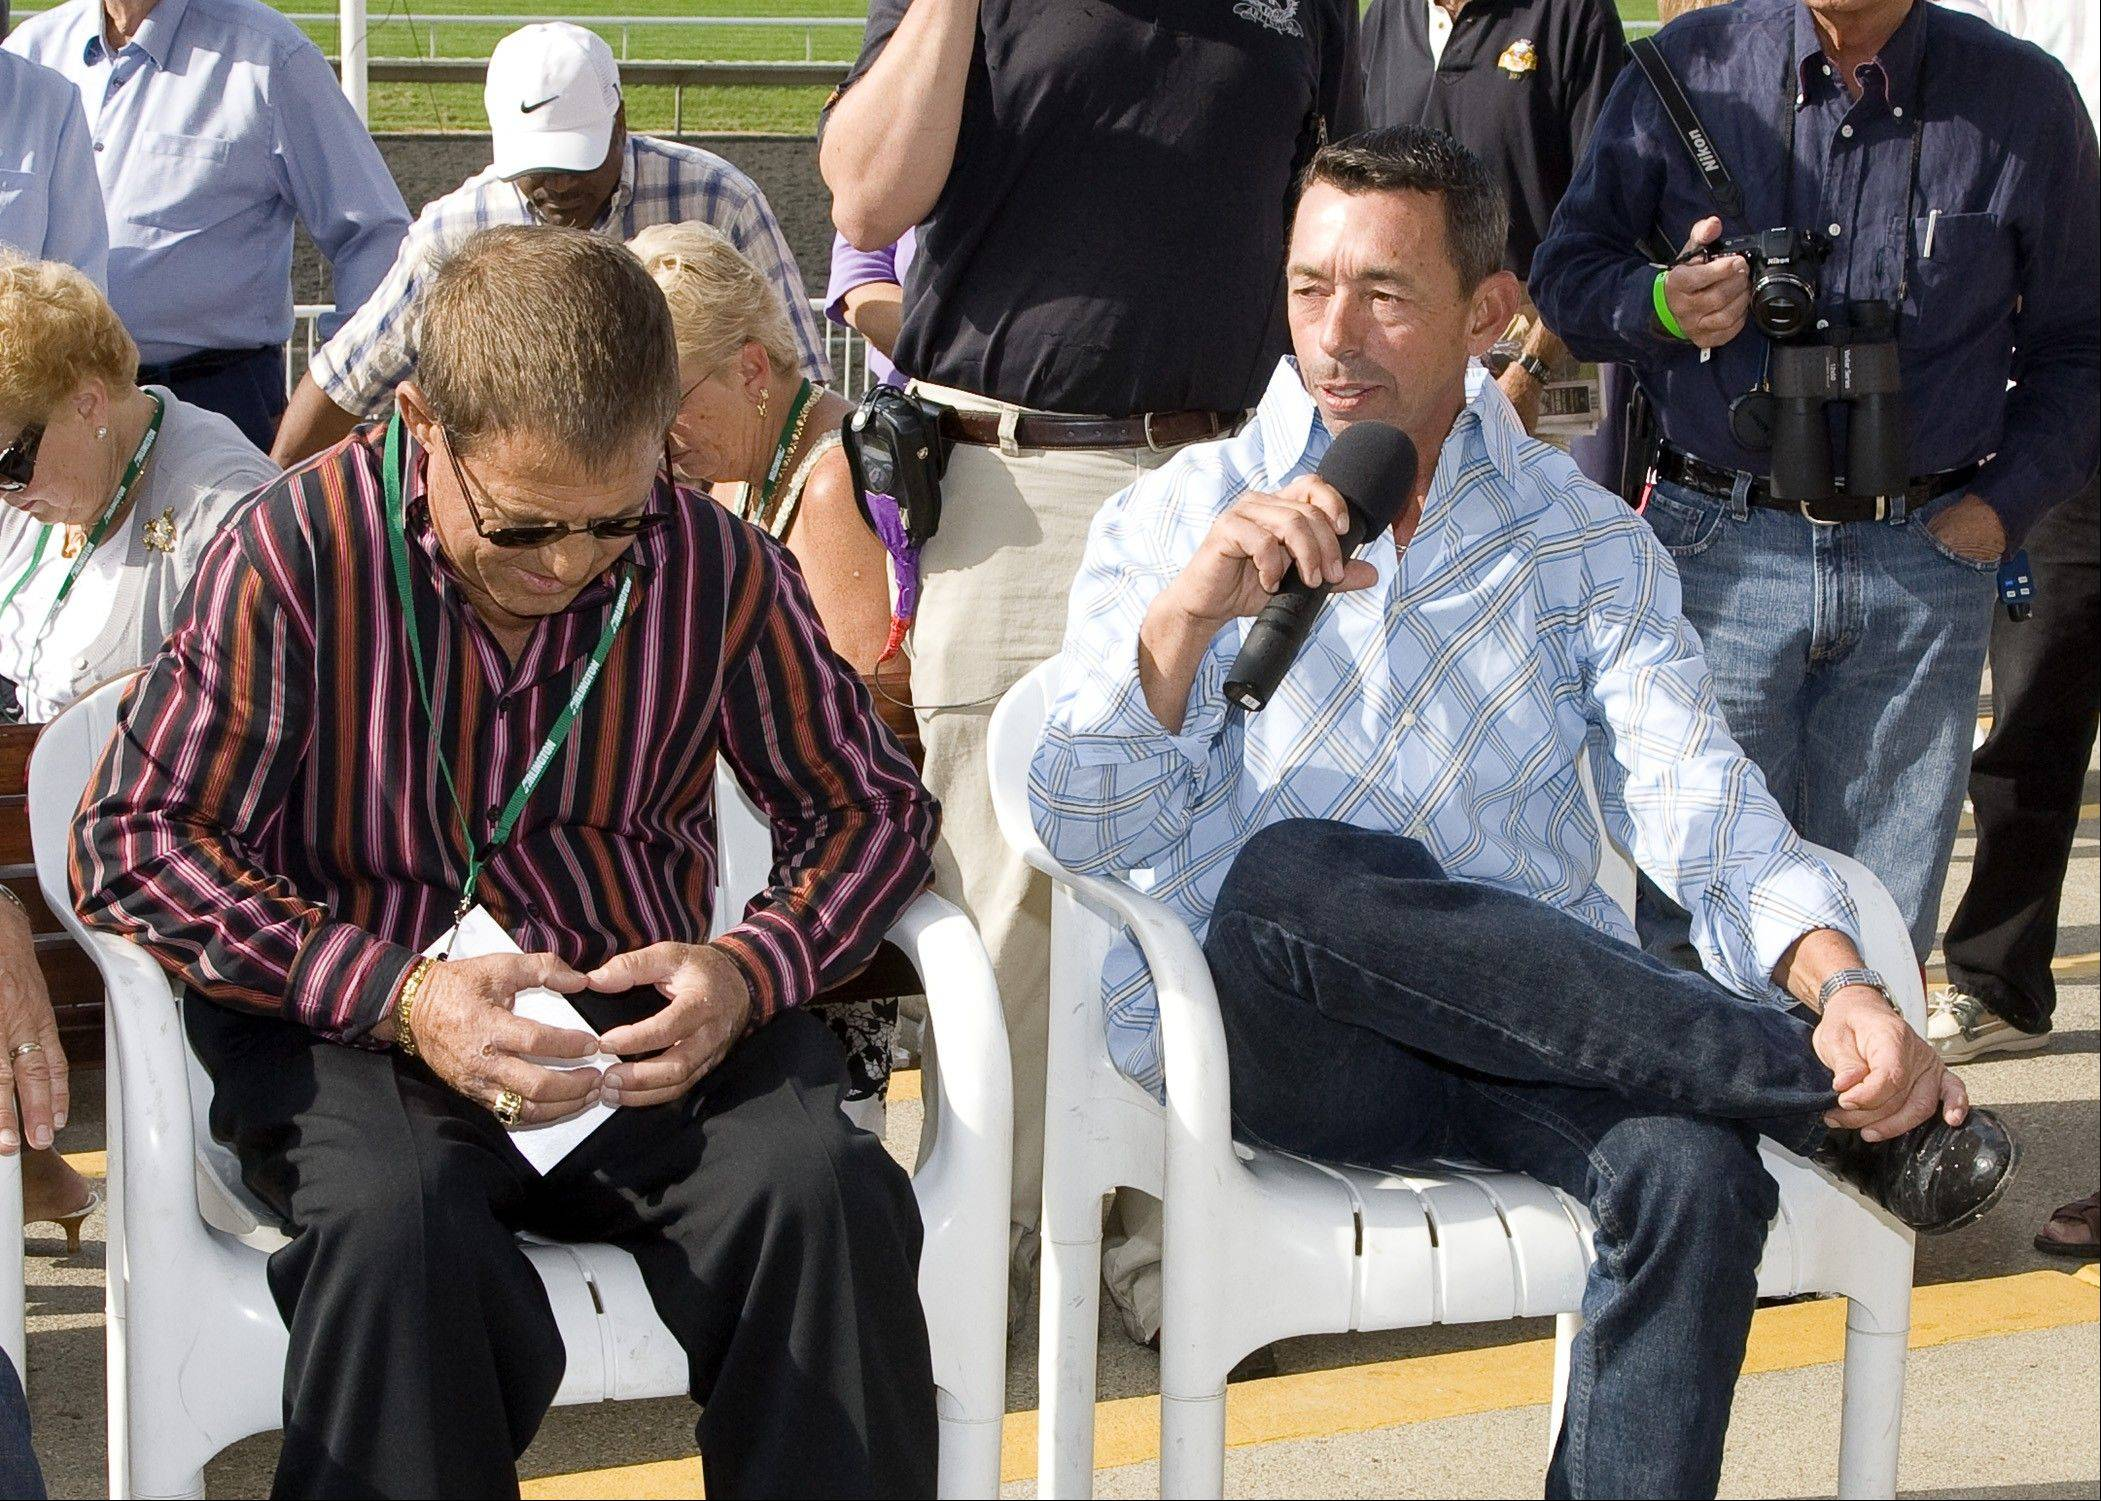 Randy Romero, left, listens as veteran jockey Mark Guidry talks Friday before making his return to racing in the jockeys vs. legends race at Arlington Park.